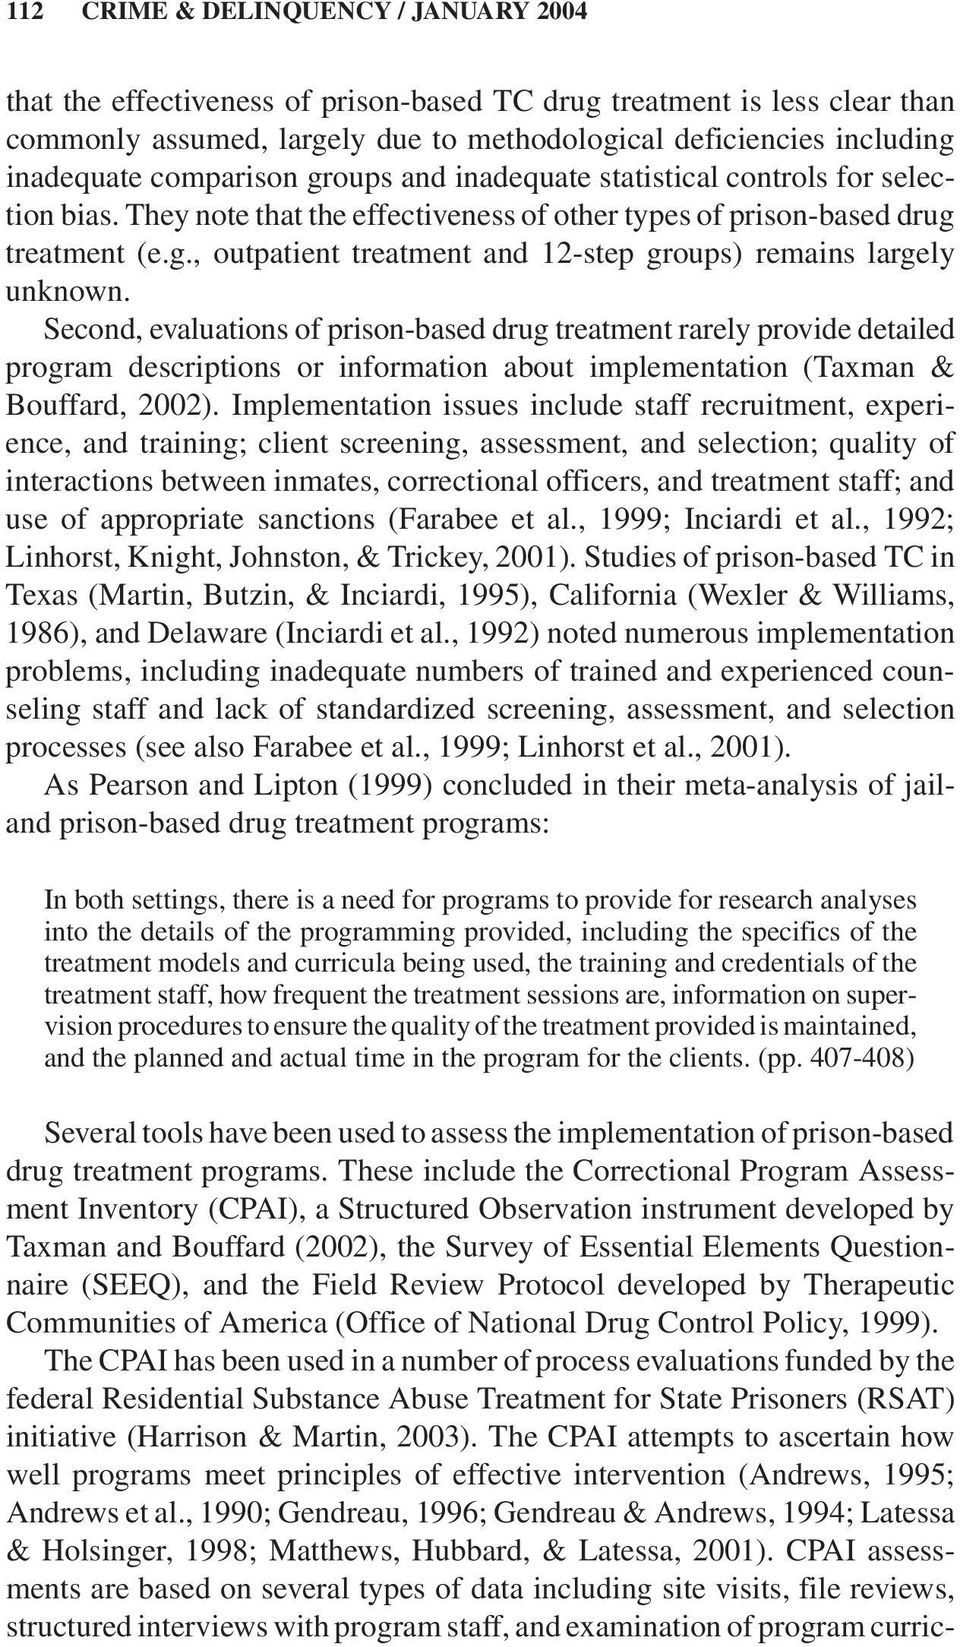 Second, evaluations of prison-based drug treatment rarely provide detailed program descriptions or information about implementation (Taxman & Bouffard, 2002).